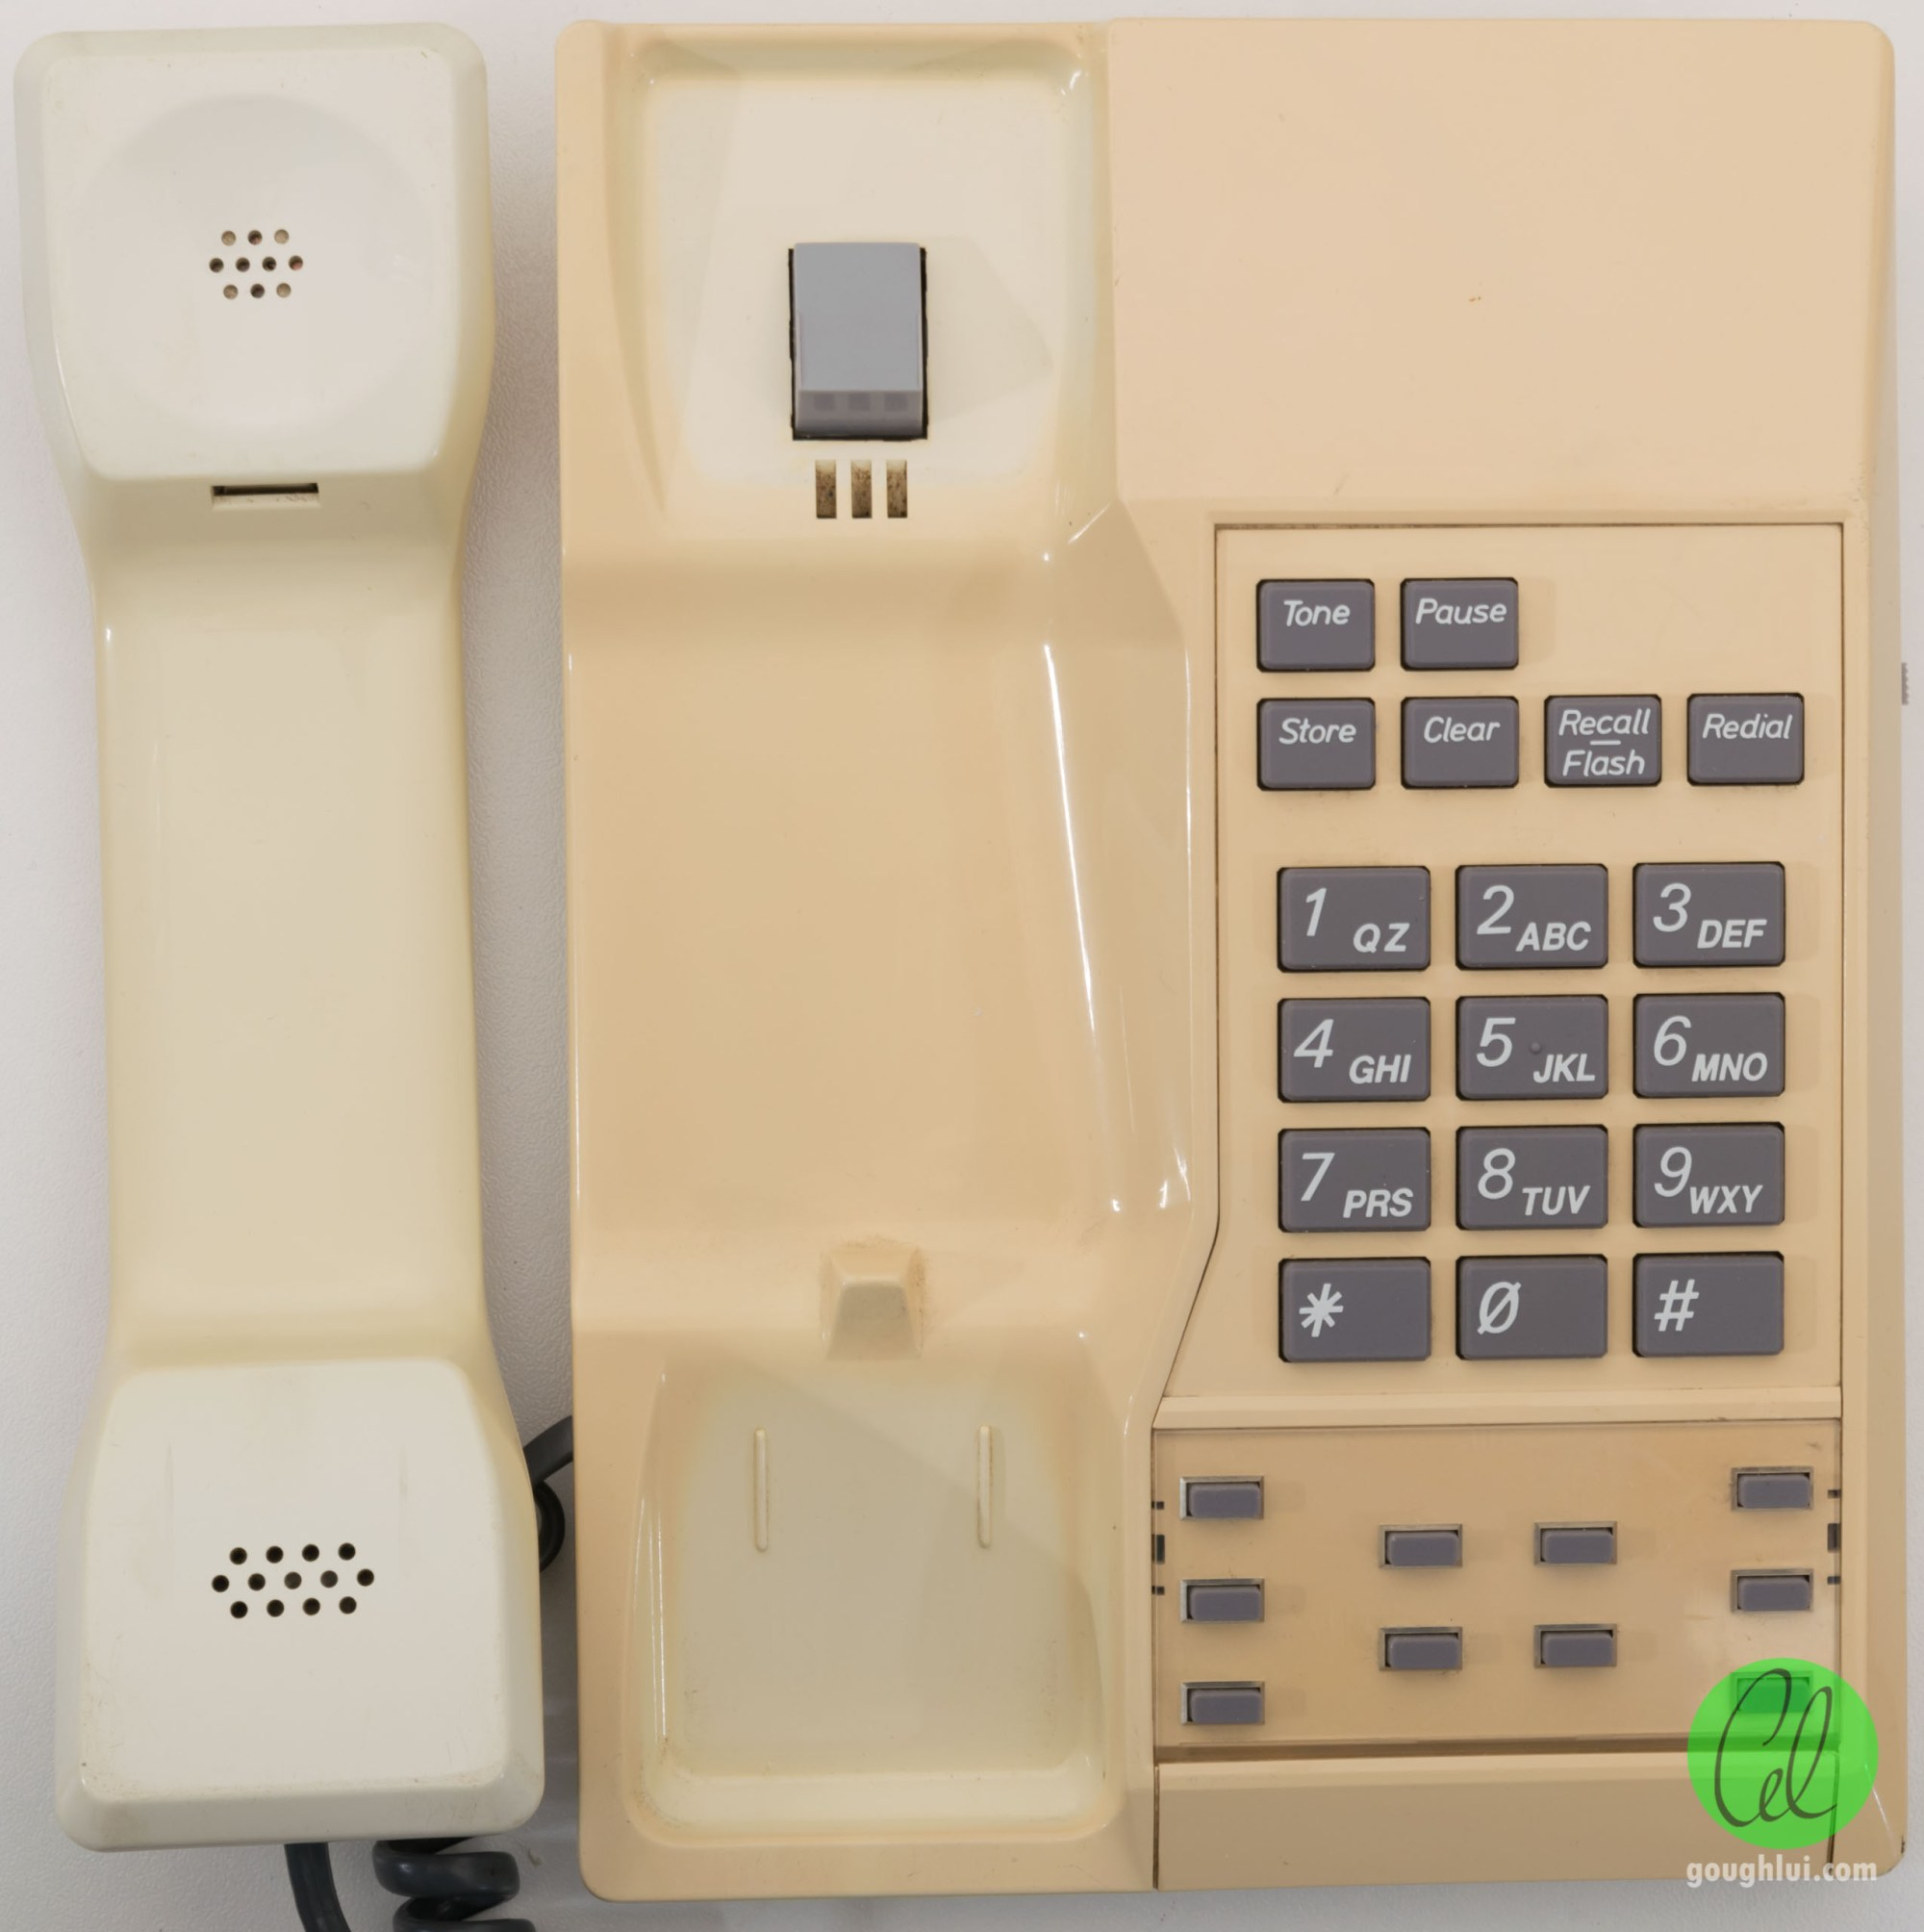 hight resolution of the telstra touchfone series are somewhat iconic as a rental telephone from telecom australia well throughout the 90s you d see these around everywhere